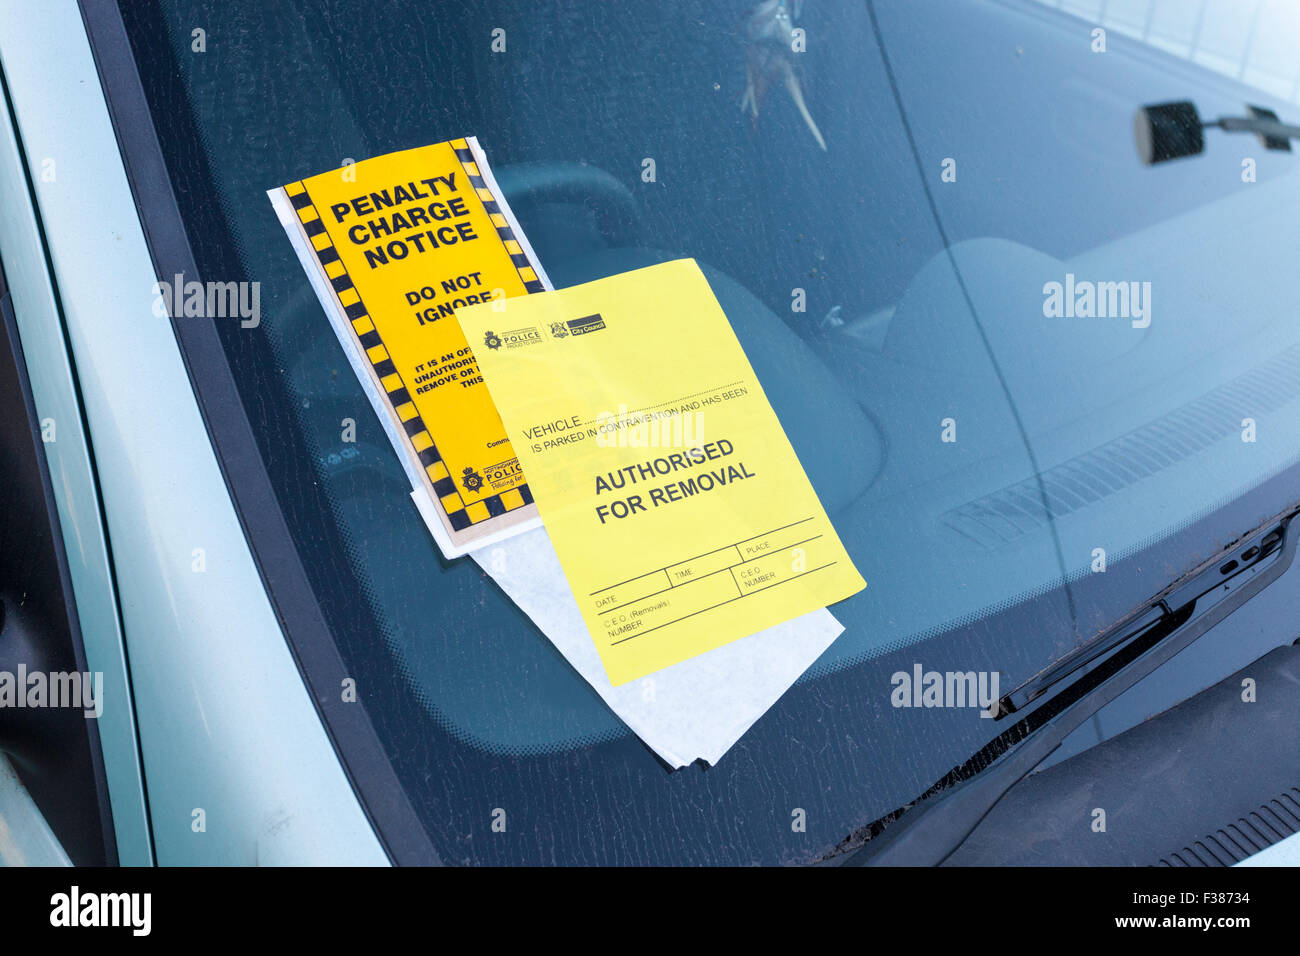 Illegal parking: Parking ticket or Penalty Charge notice with Authorised For Removal notice added on a windscreen, - Stock Image